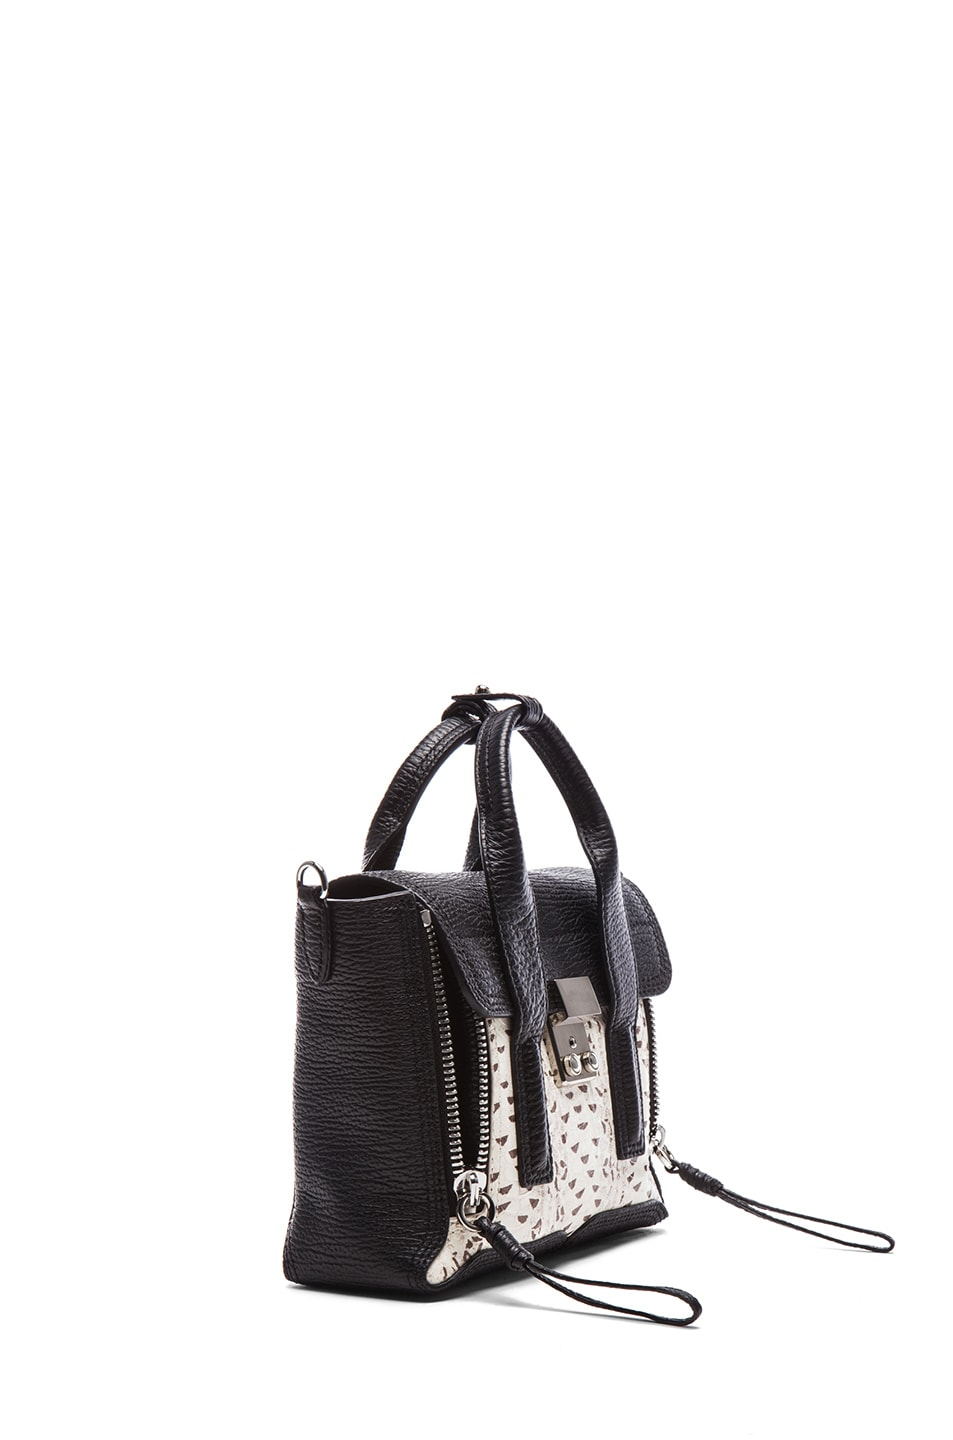 Image 3 of 3.1 phillip lim EXCLUSIVE Mini Pashli Satchel in White & Black